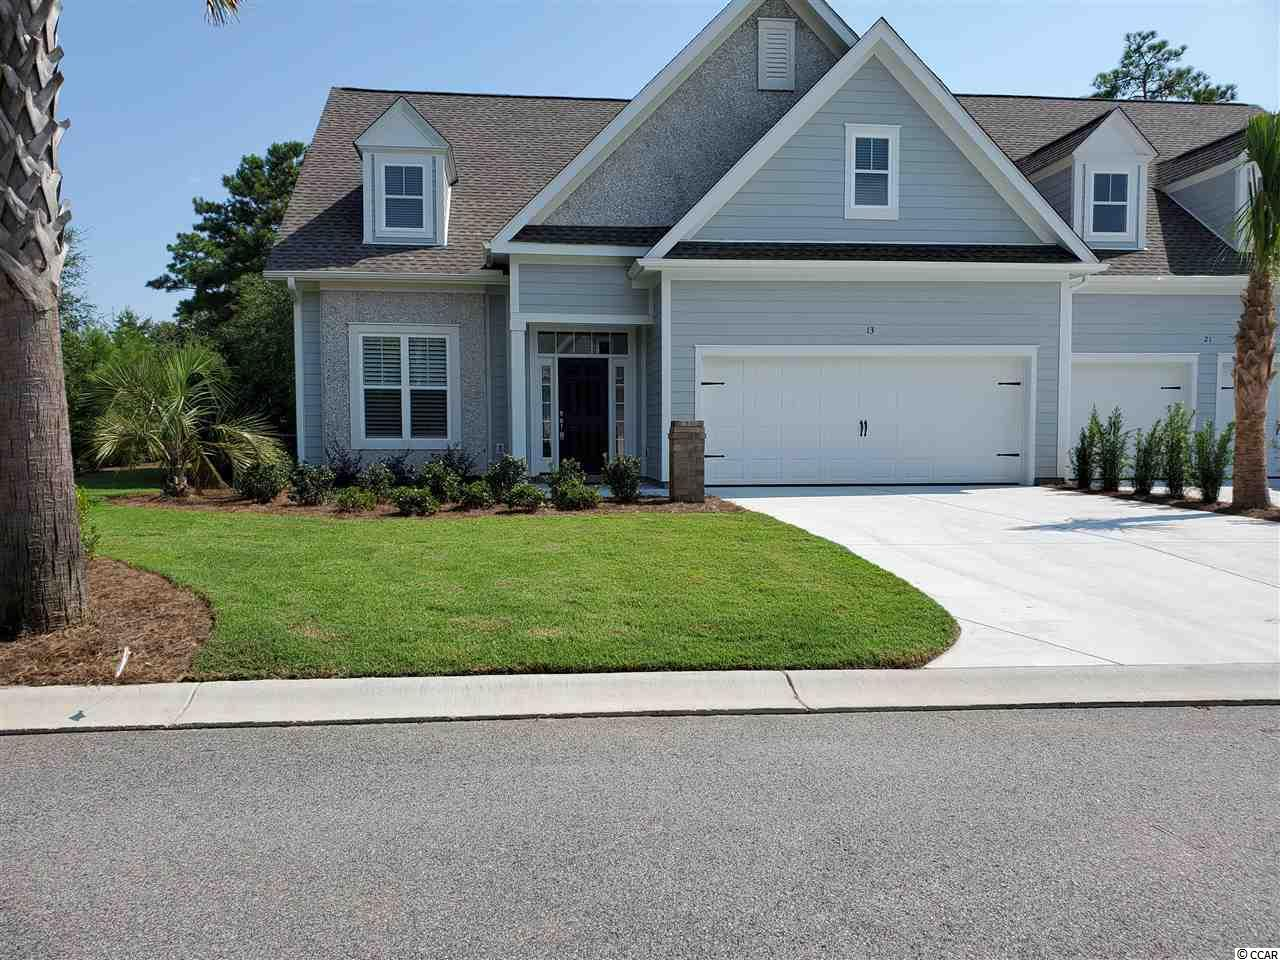 Townhouse for Sale at Lot 14 Golf Club Circle Lot 14 Golf Club Circle Pawleys Island, South Carolina 29585 United States